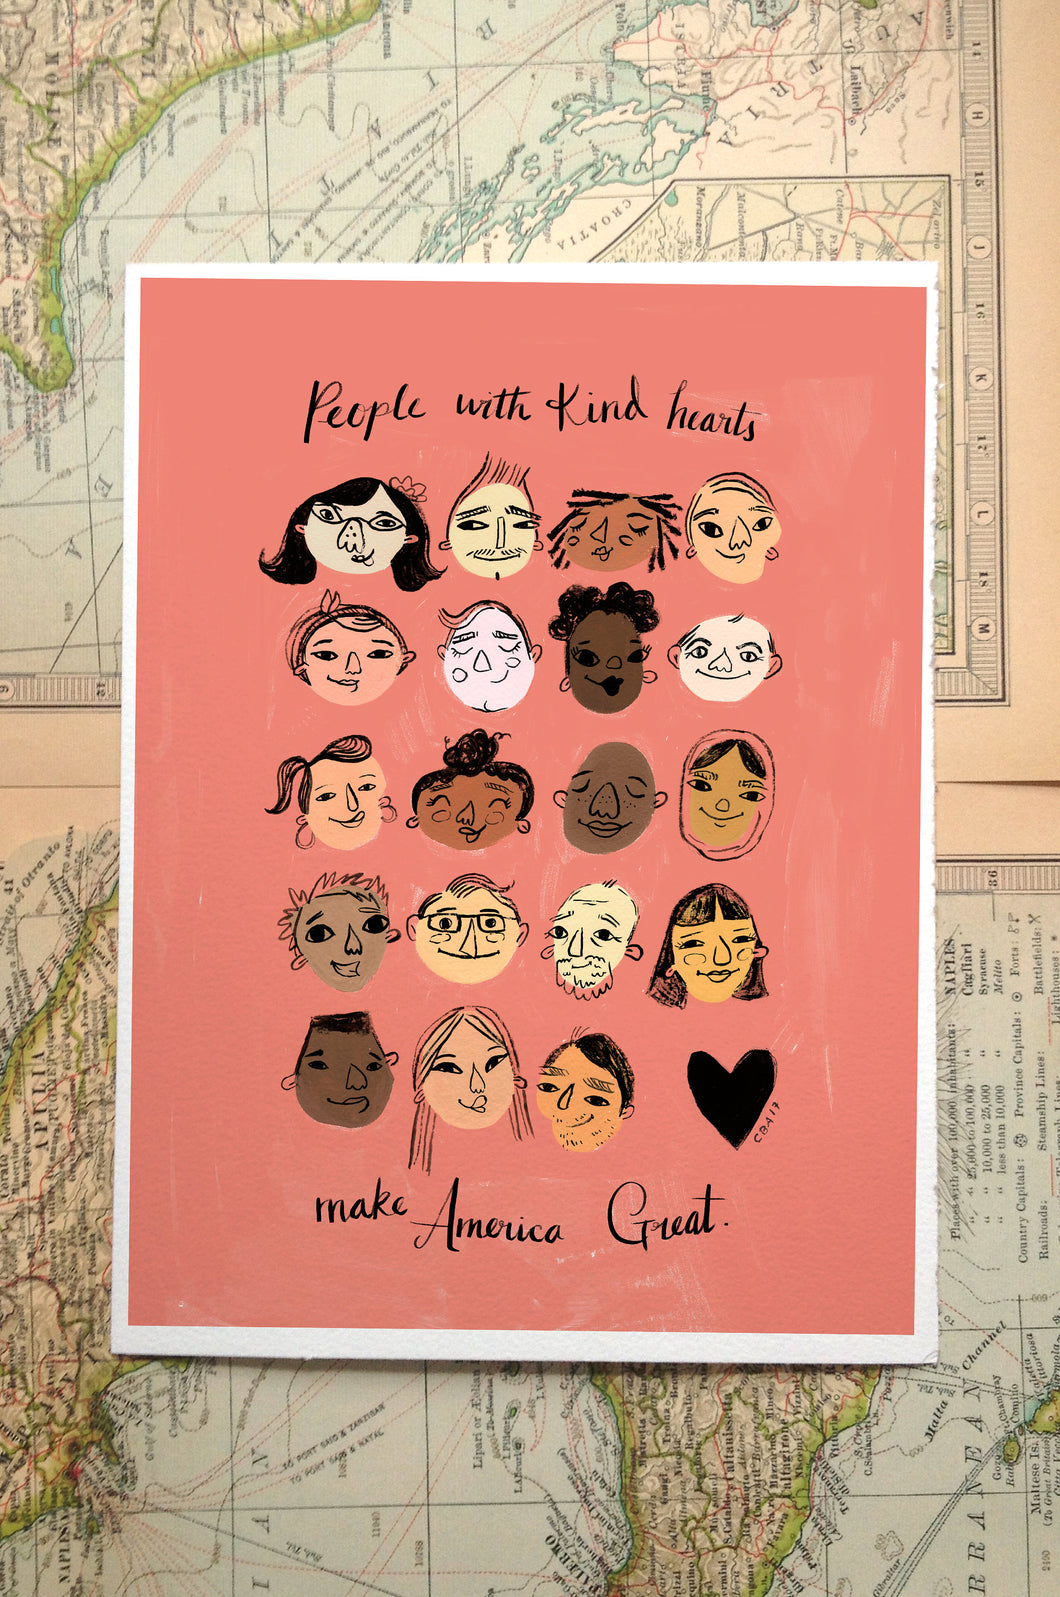 people with kind hearts make america great diversity illustration painting